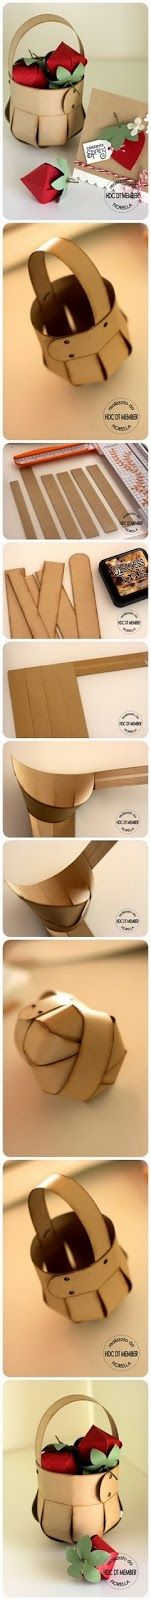 HOT DIY IDEAS: How To Make a Gift Basket